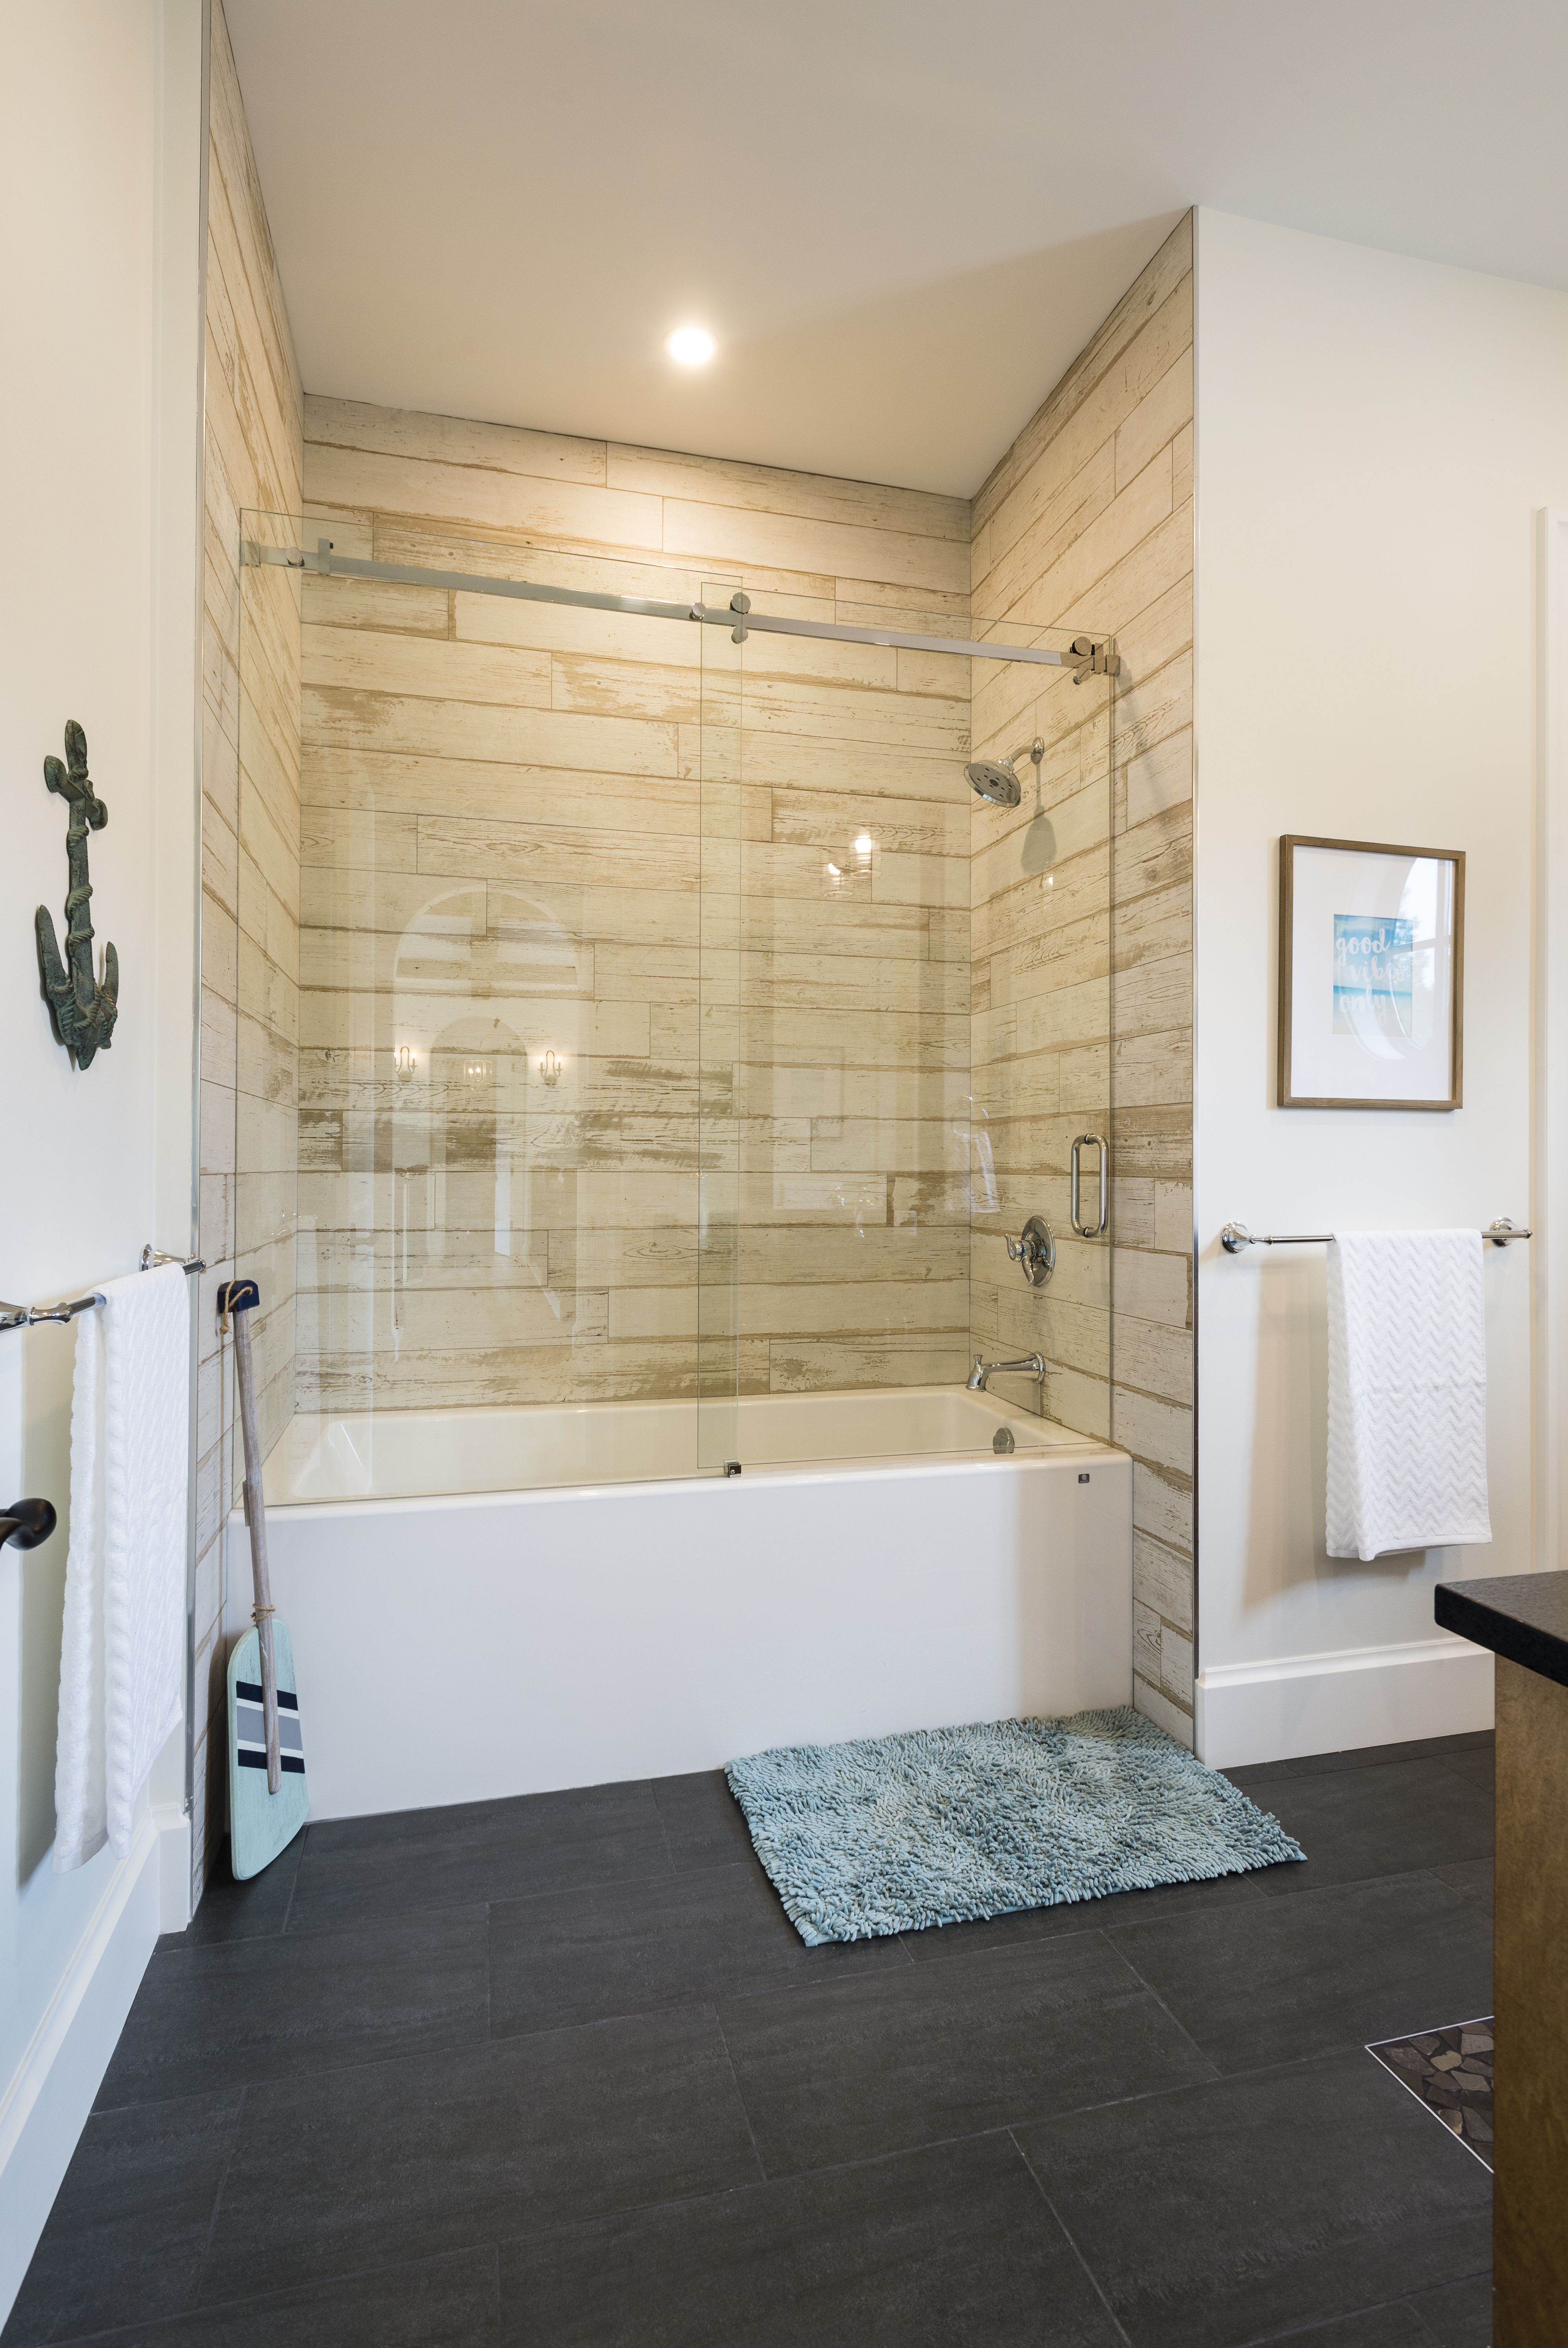 bathroom hardwood in plank ideas ceramic look floors pebble pictures light size wall cabinet vanities of wood timber and mirror designs vanity with shower applying full tile bright floor tiles blendart awesome colors bathrooms